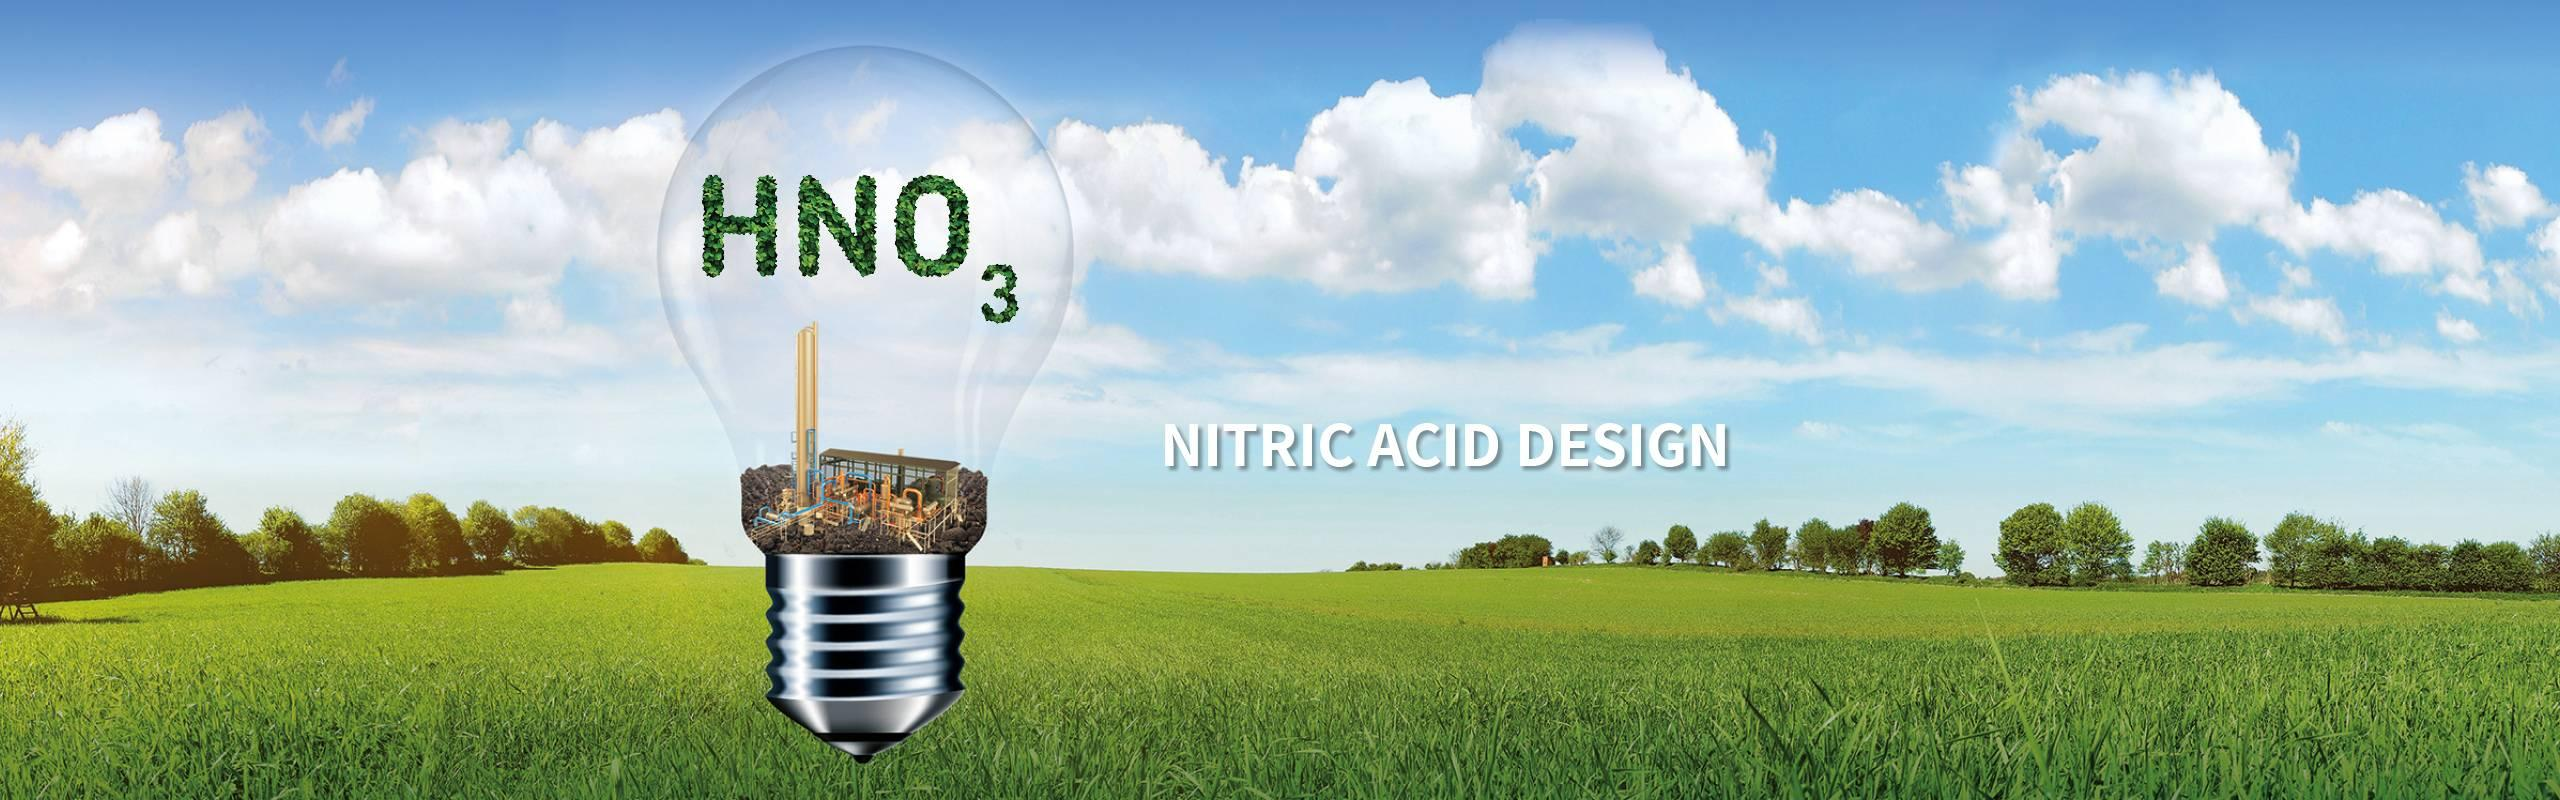 Hero Nitric Acid